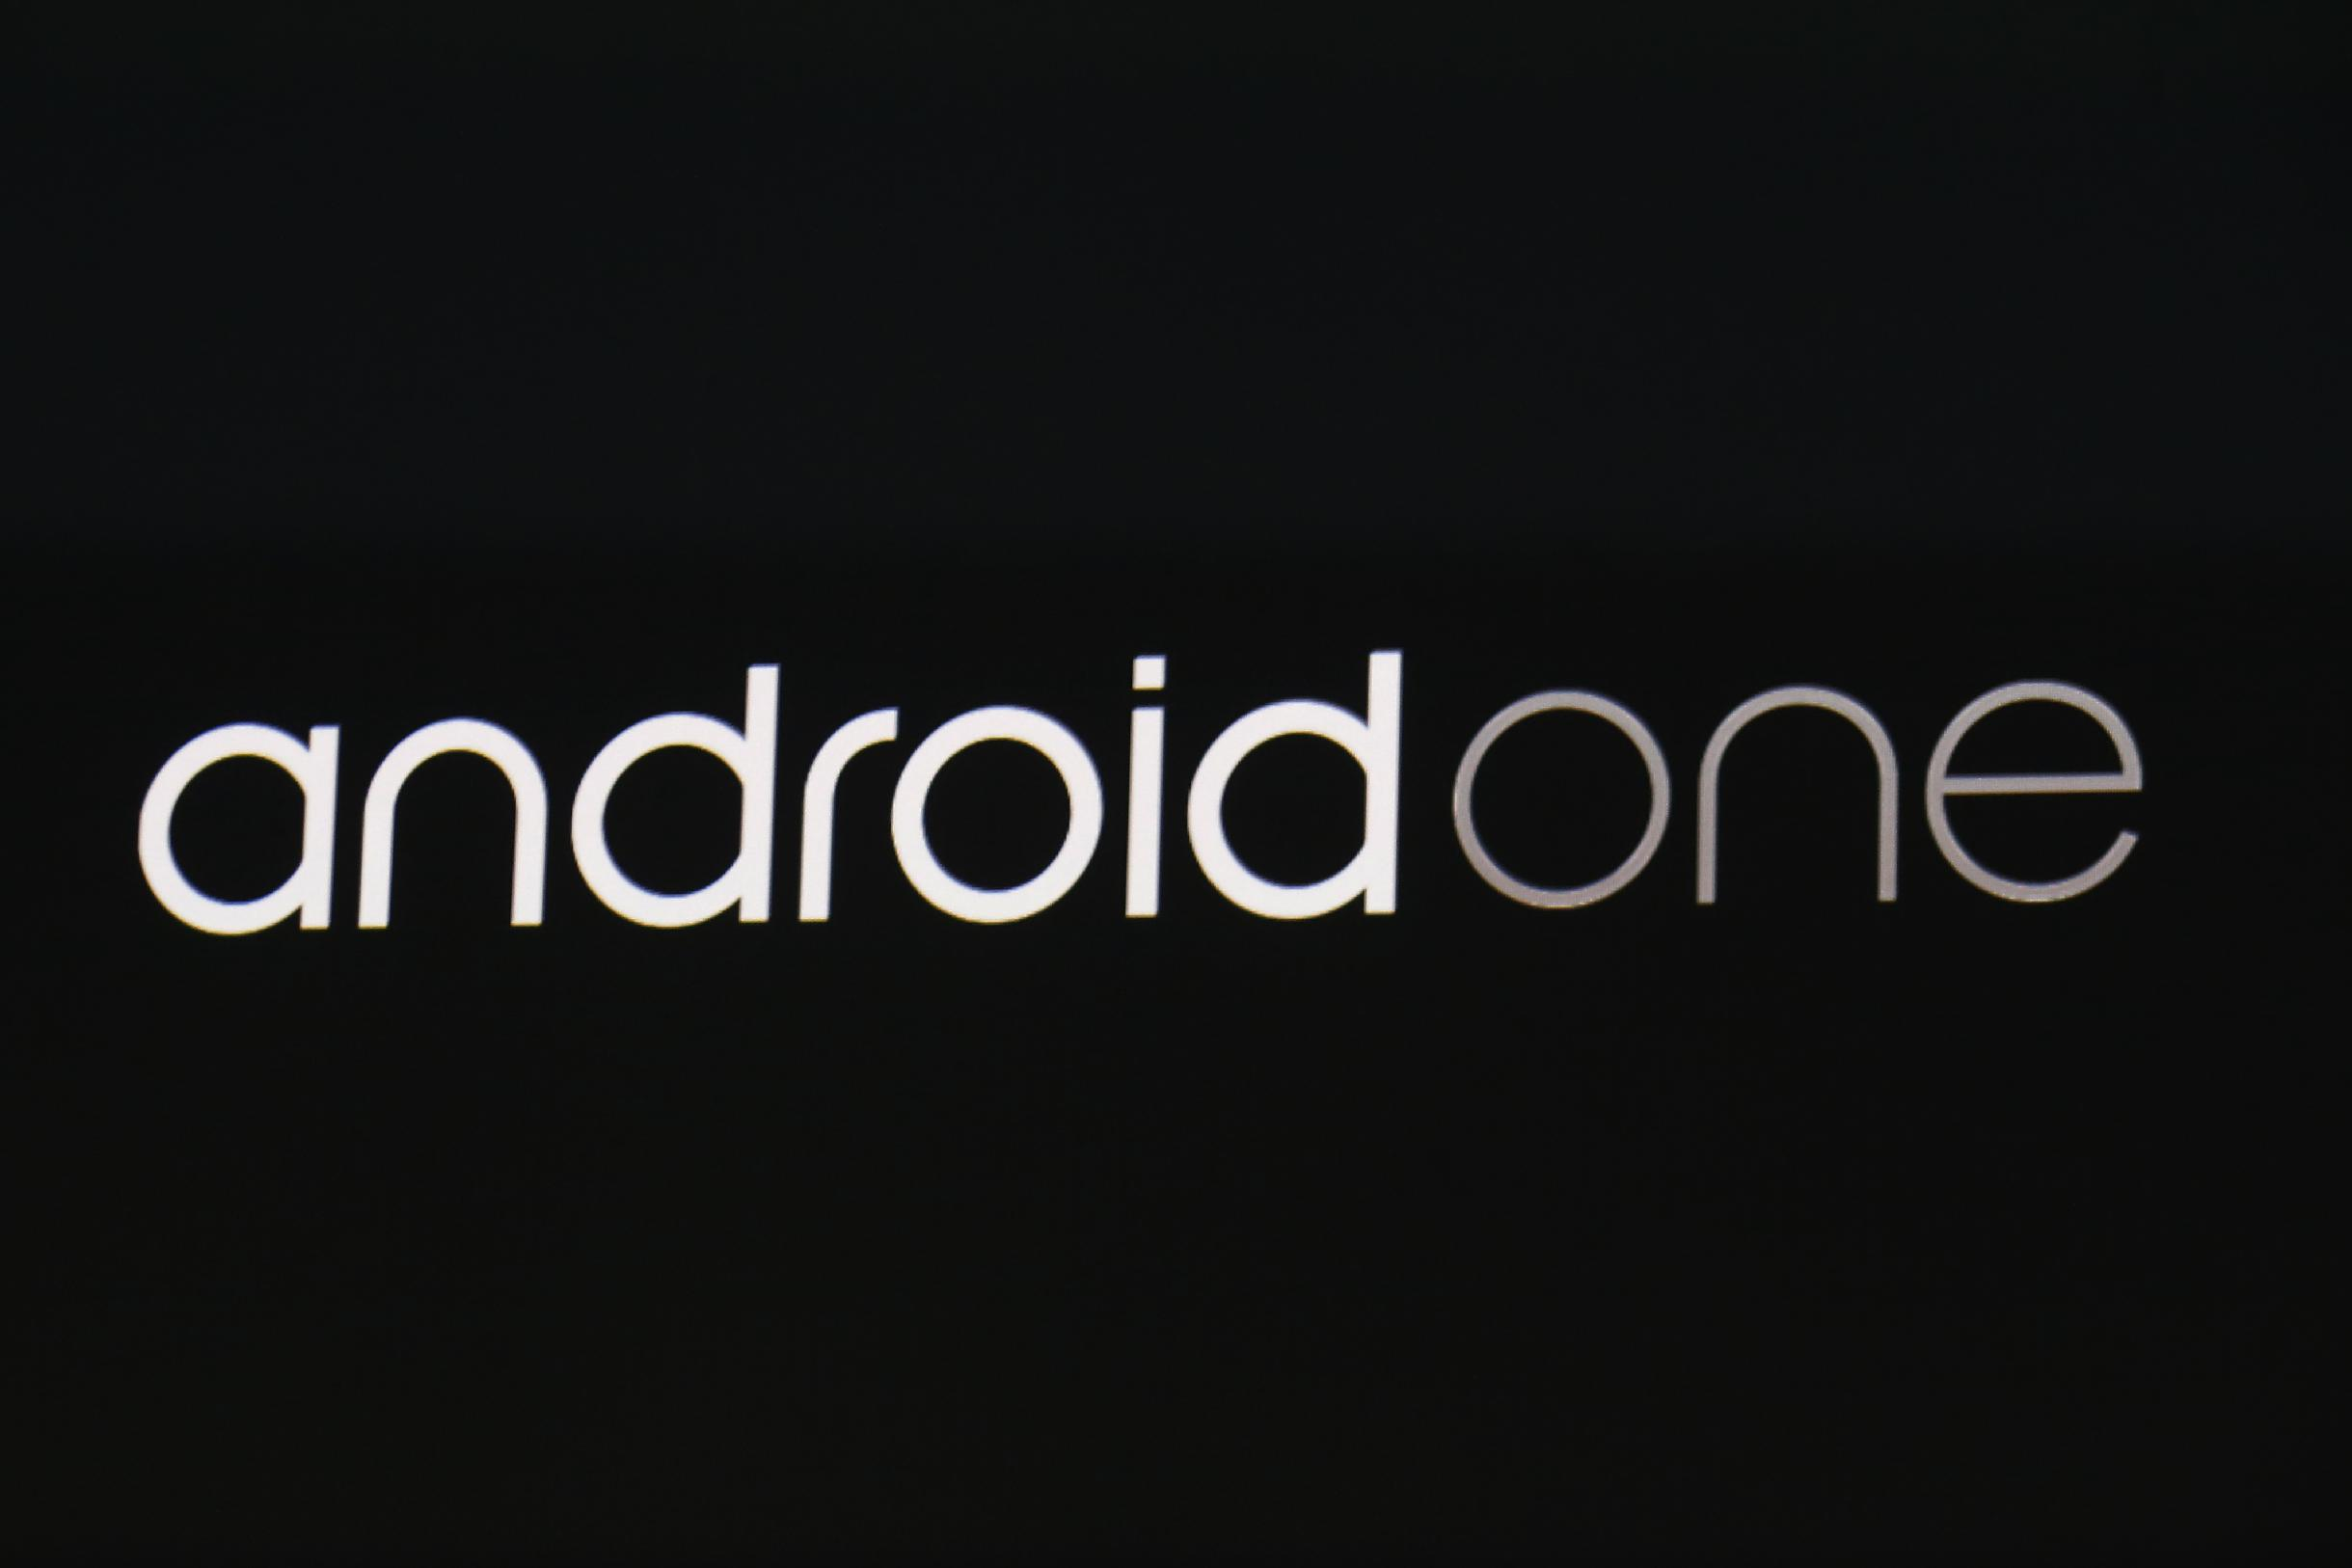 Google debuts $105 Android One smartphone in India